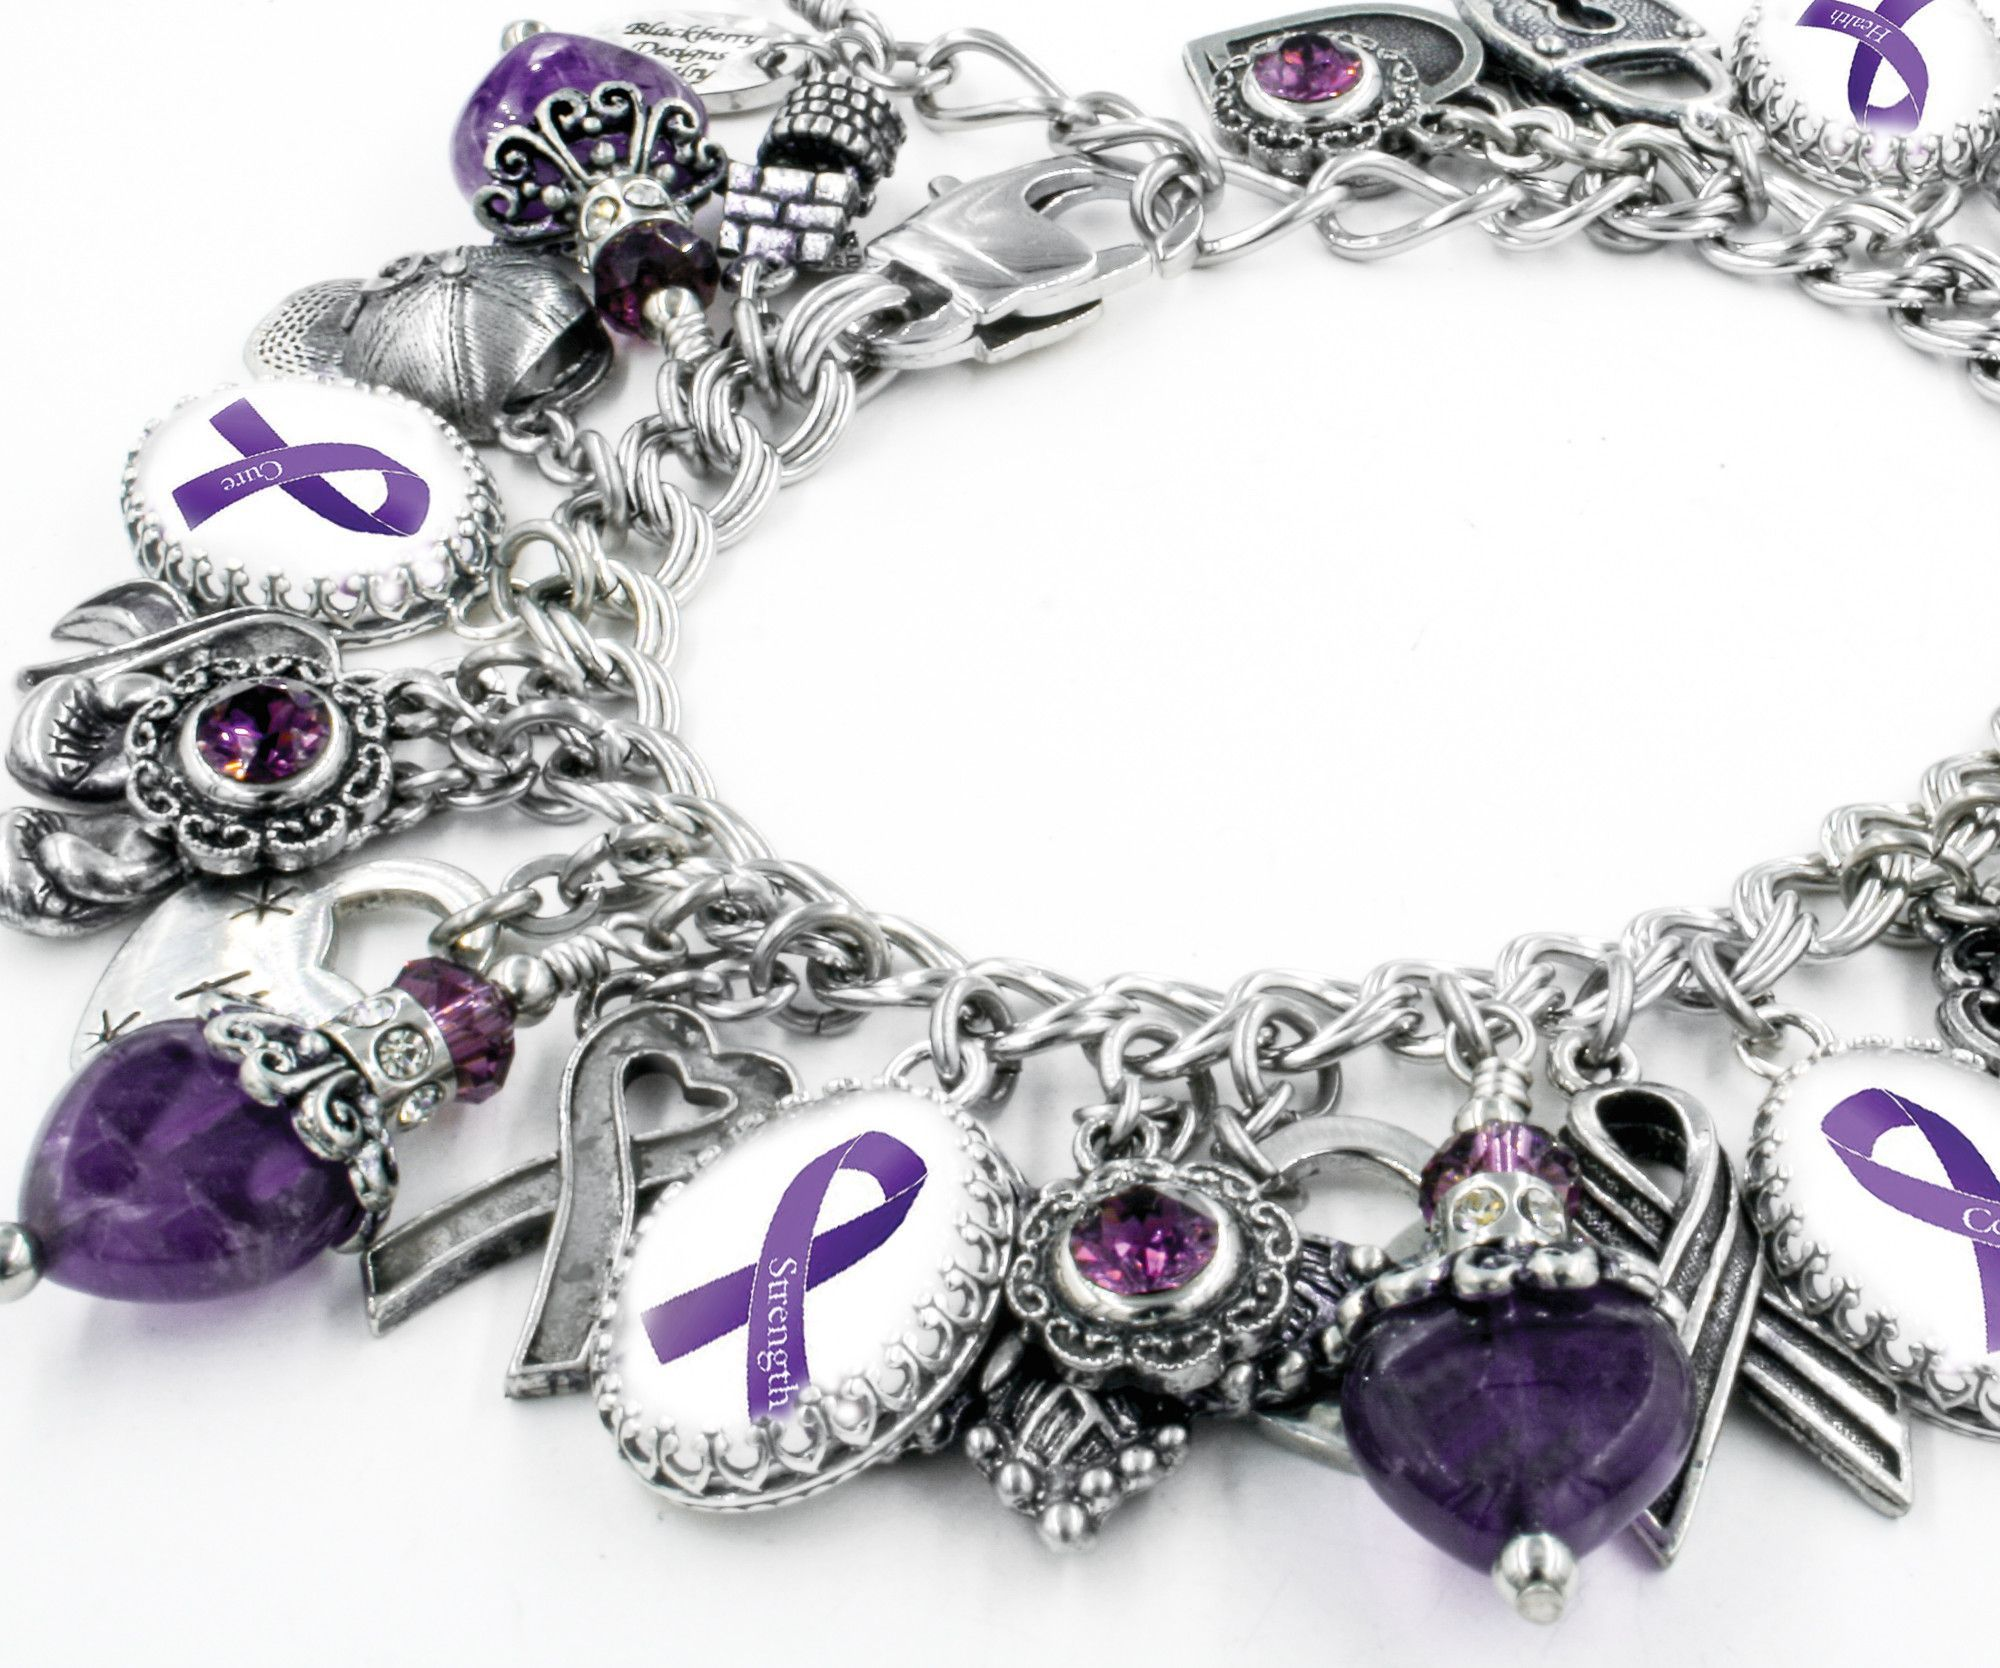 ribbon purple idai commons co baskan file bracelet purpleribbon wikimedia awareness alzheimer svg